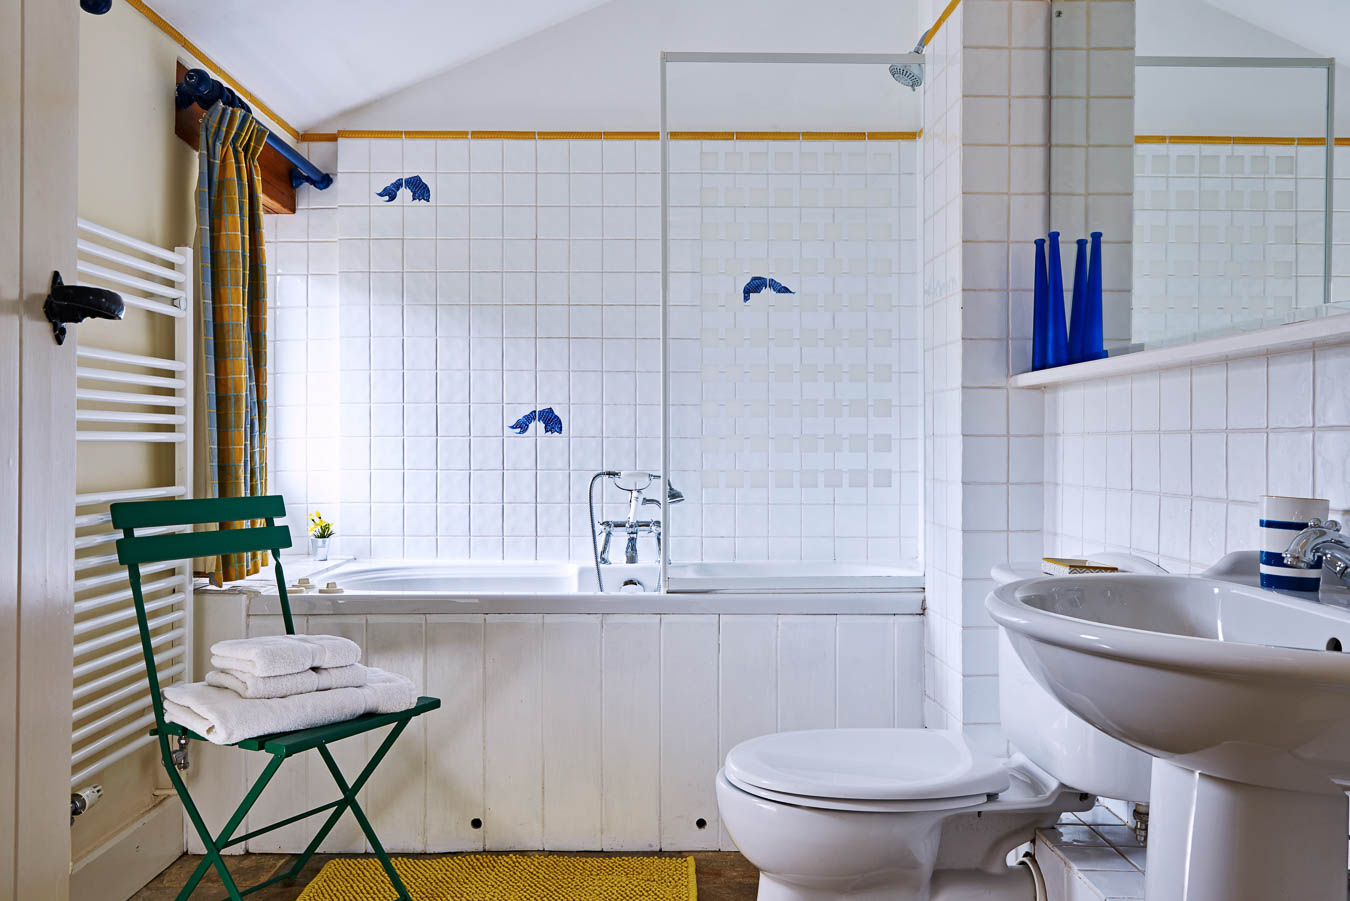 The Linhay cottage Flear Farm master bedroom en suite with chrome bath accessories and blue and yellow theme.